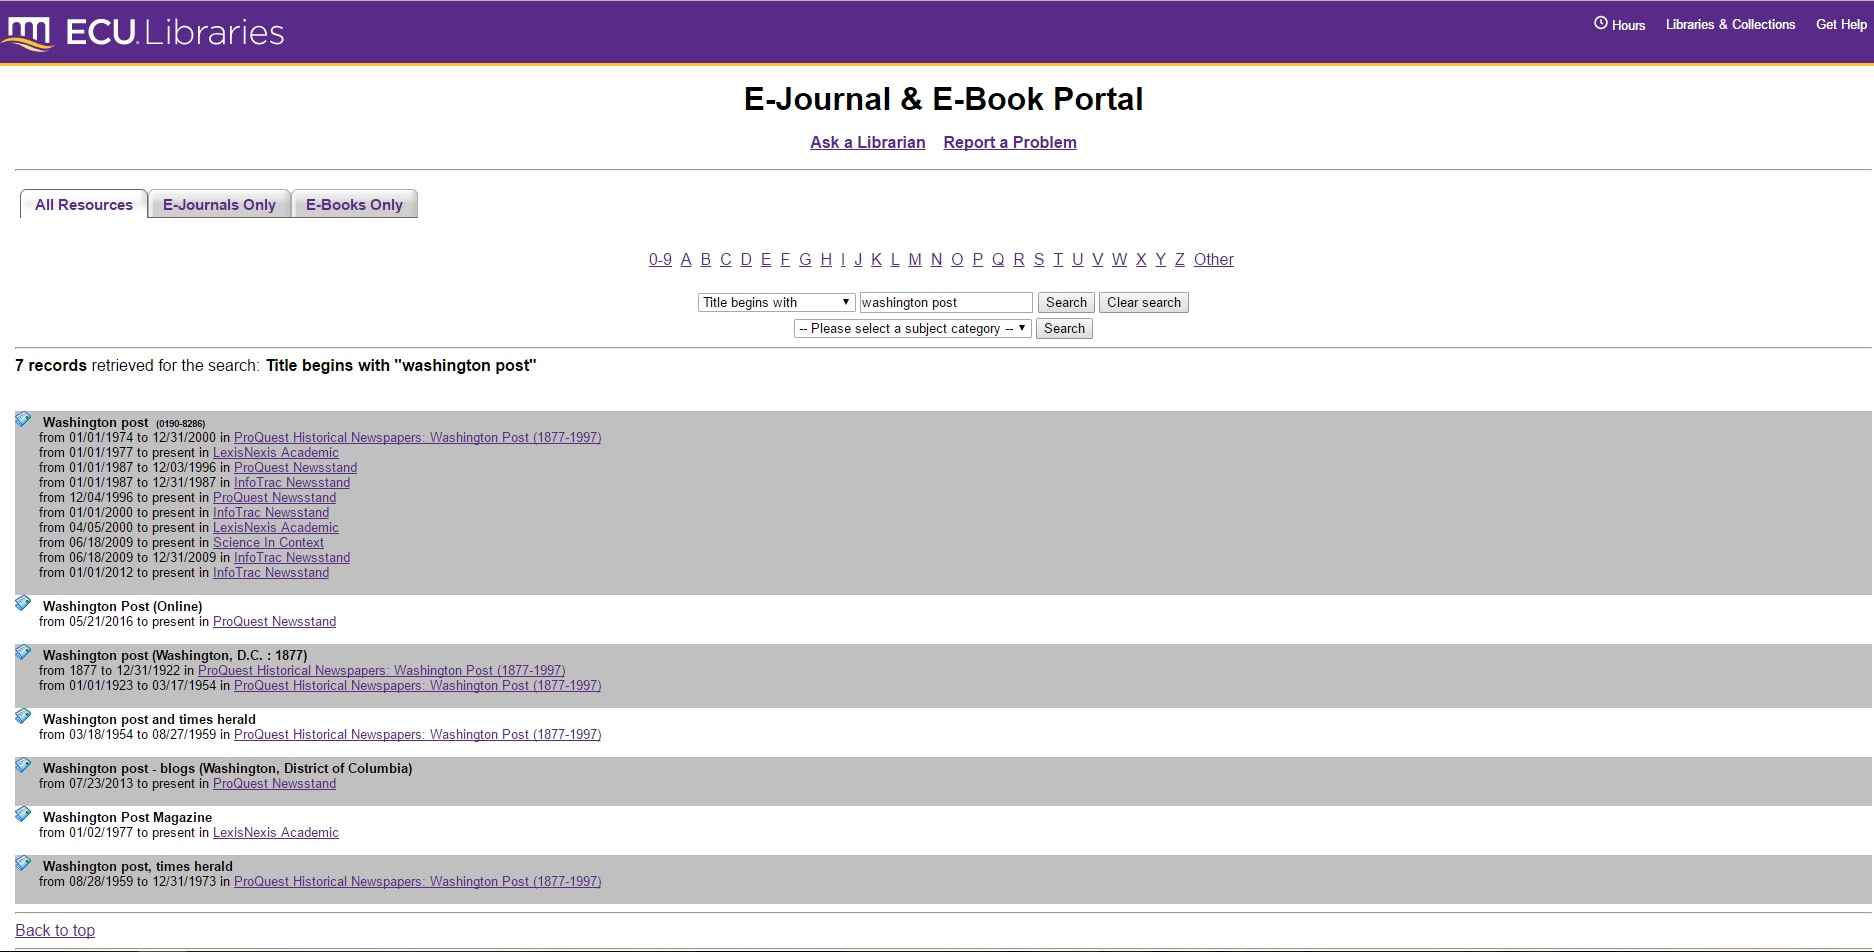 Image of E-Journal and E-Book Portal page